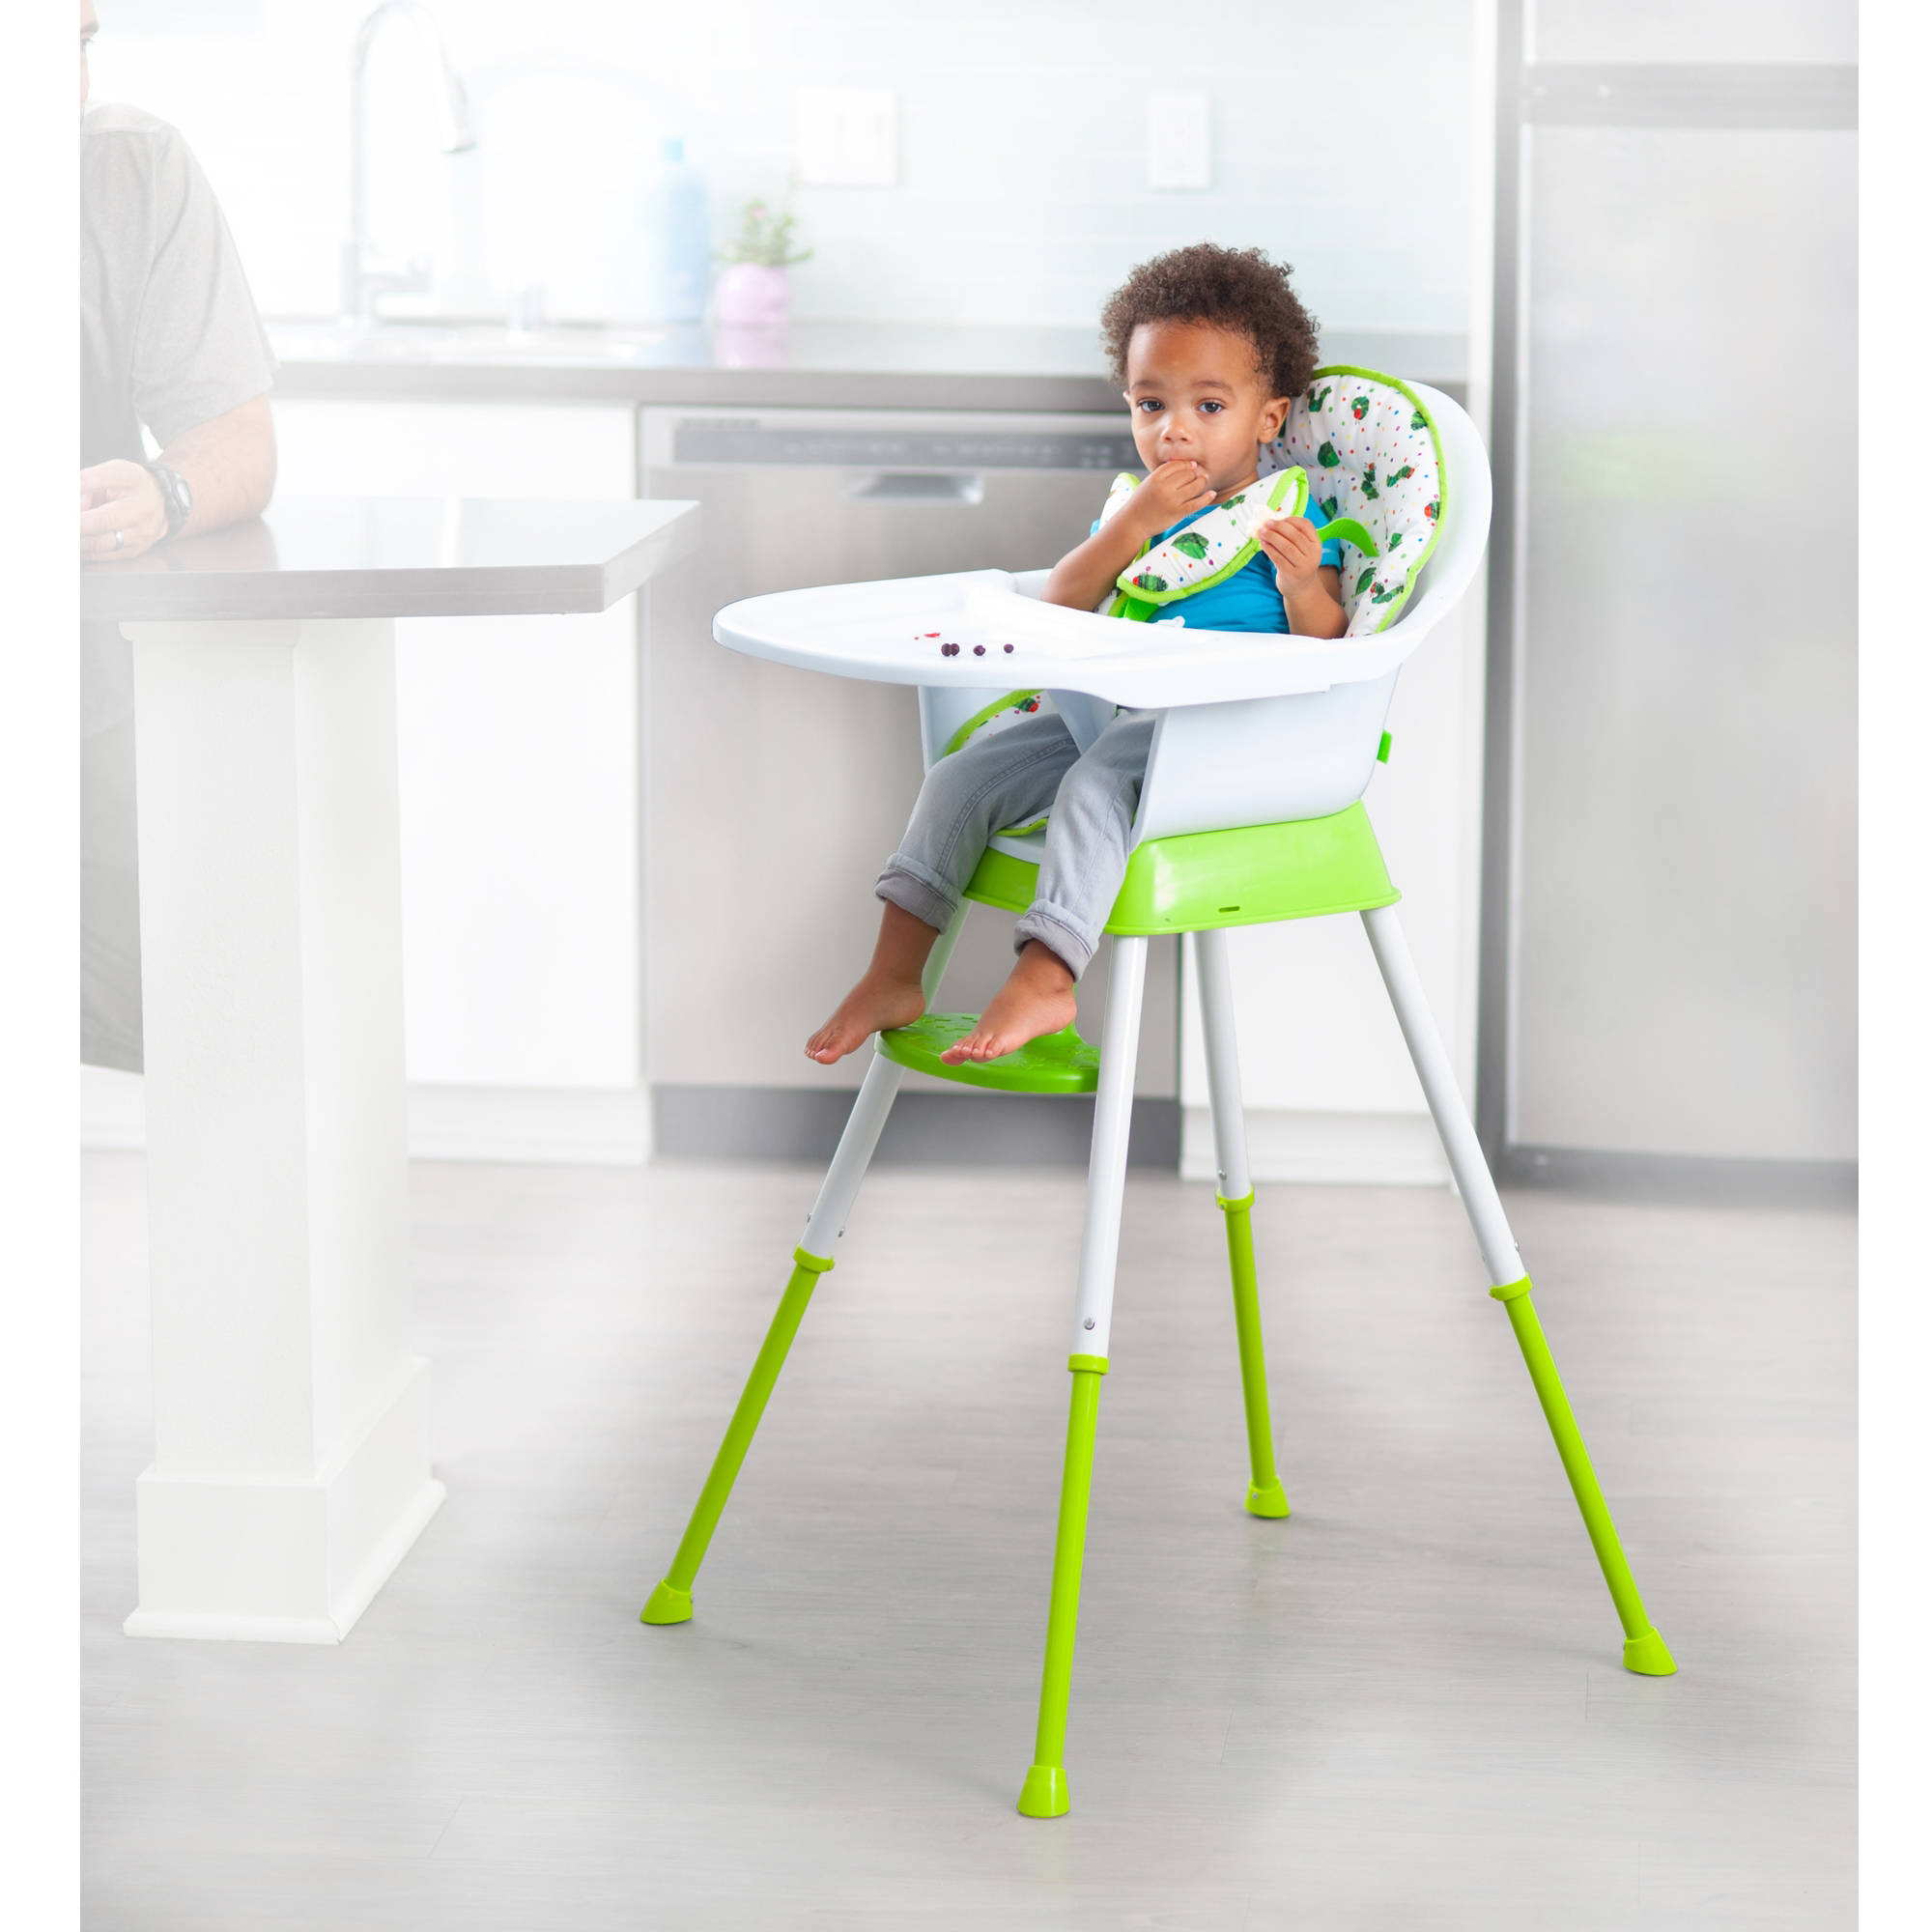 The Very Hungry Caterpillar Happy and Hungry 3 in 1 High Chair, Leaves by The World of Eric Carle